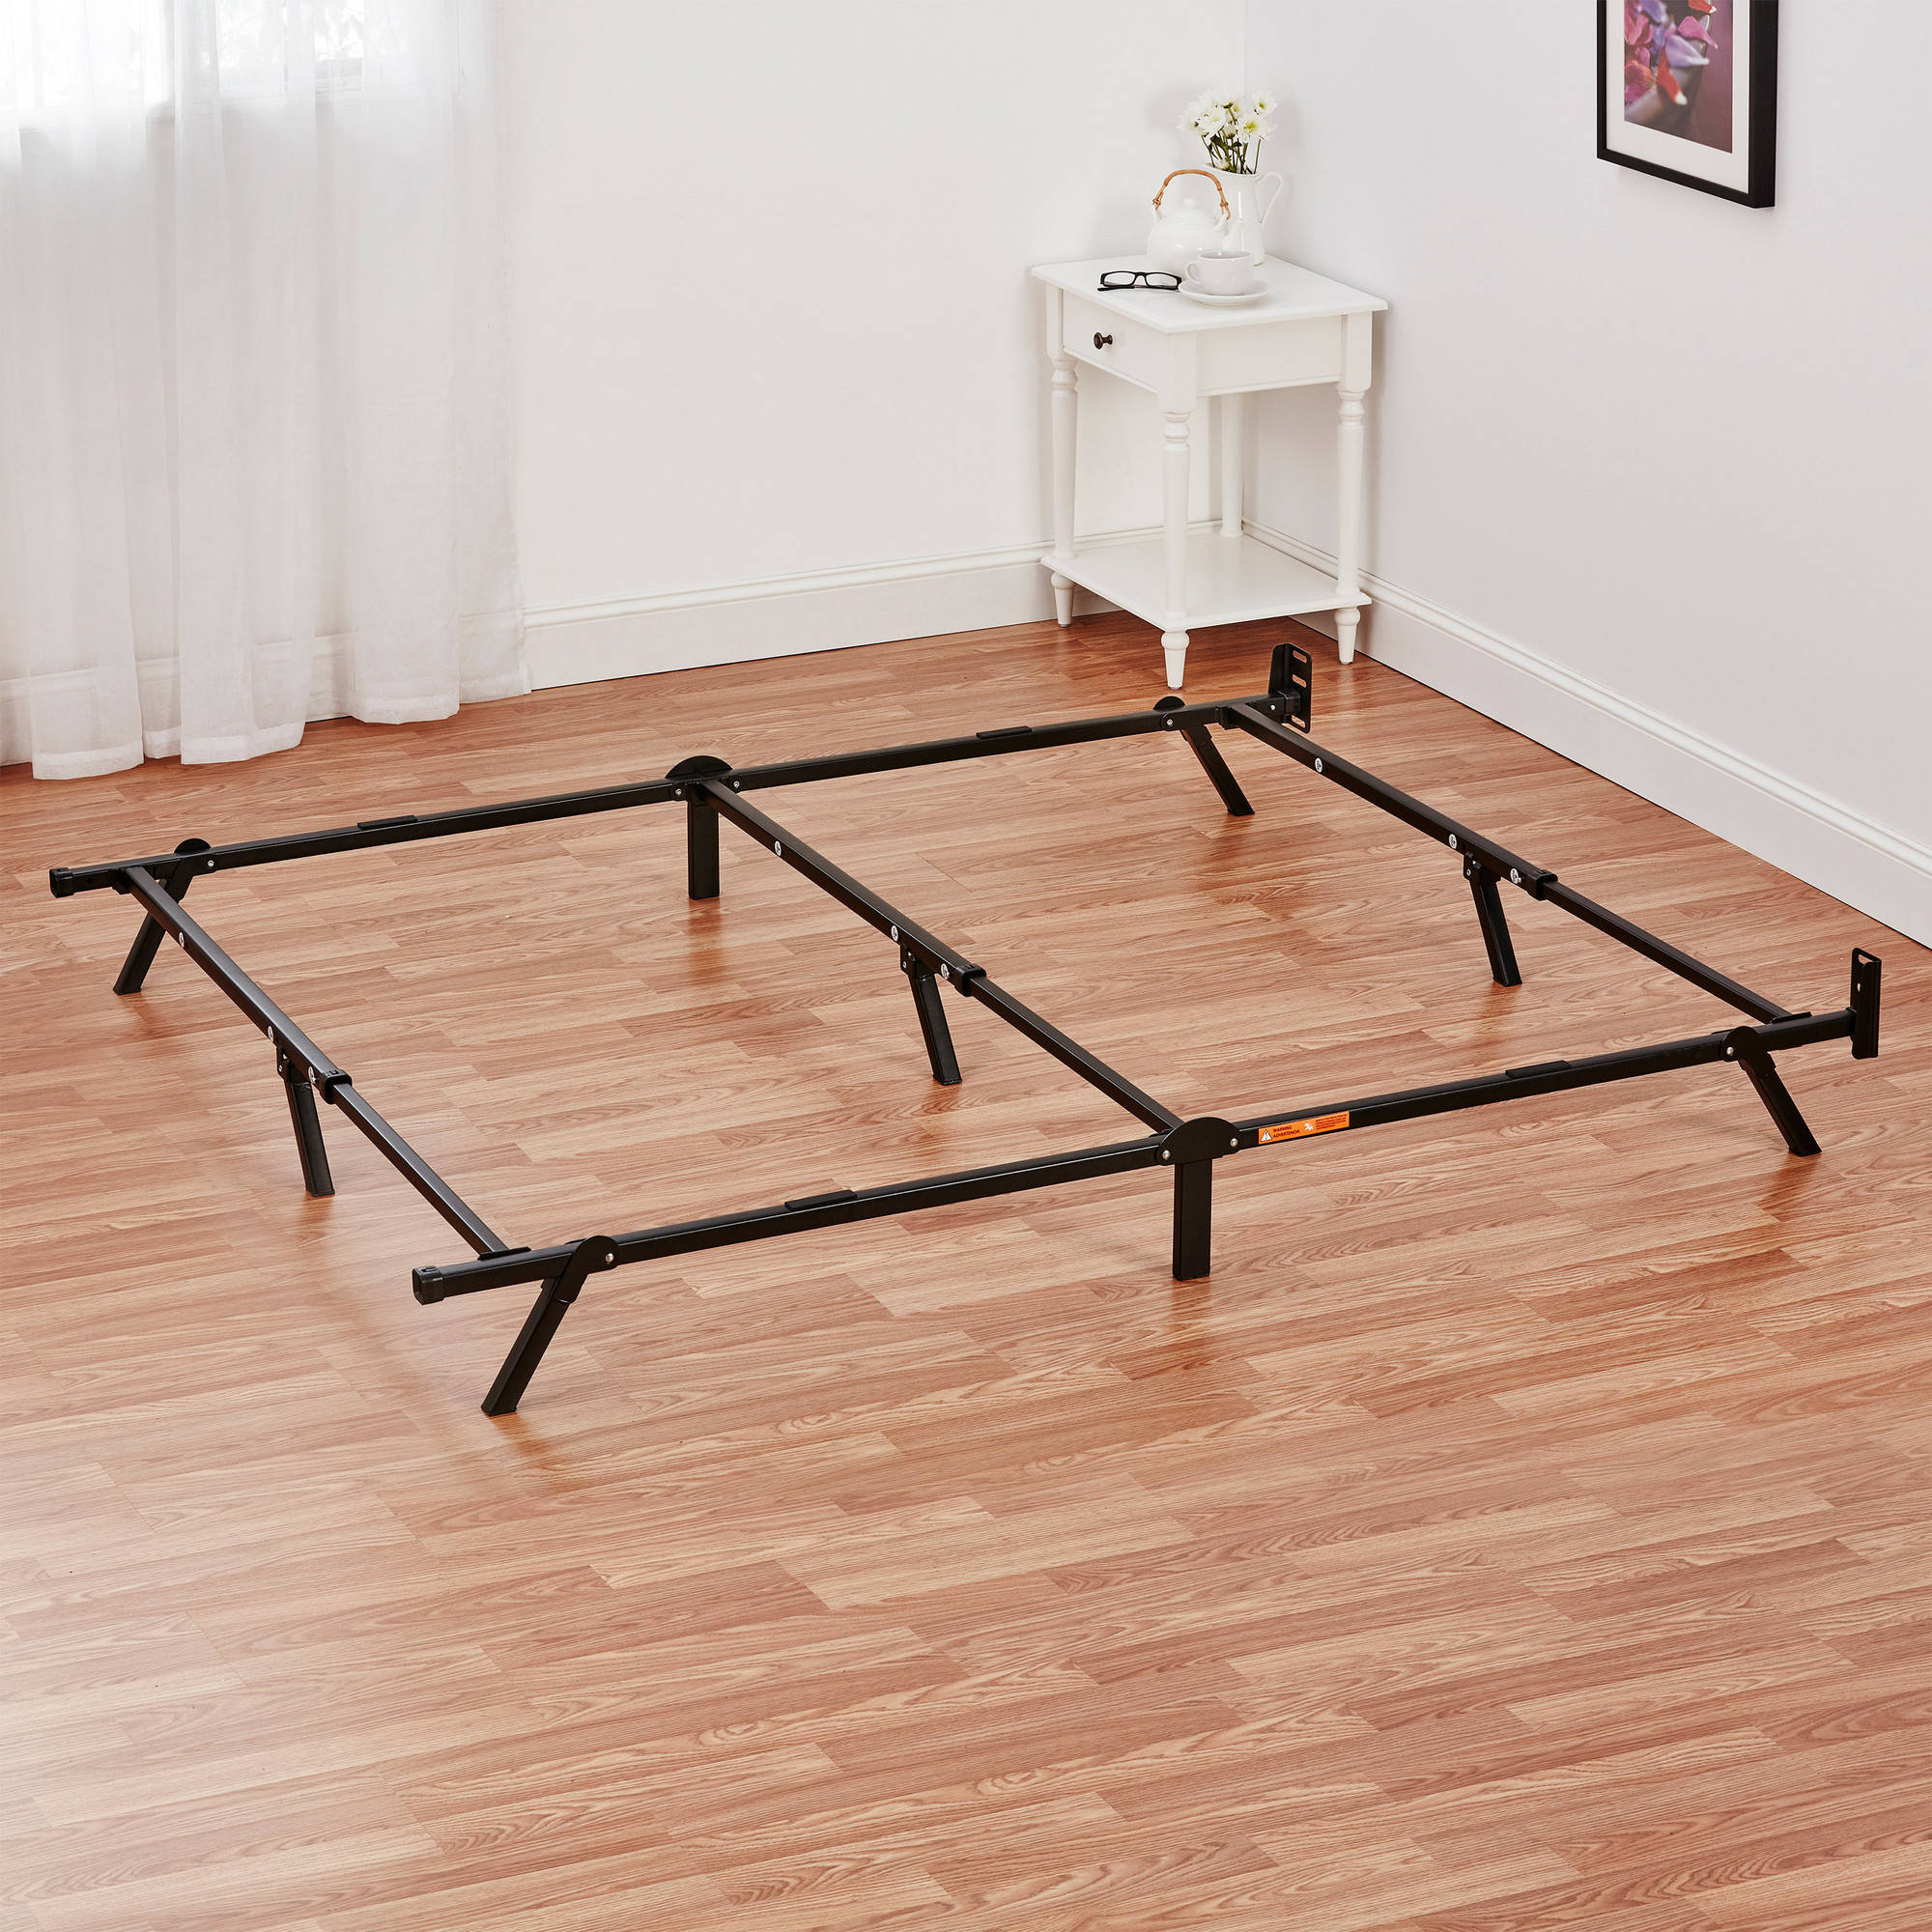 Adjustable metal bed frame twin full queen size platform Metal bed frame twin